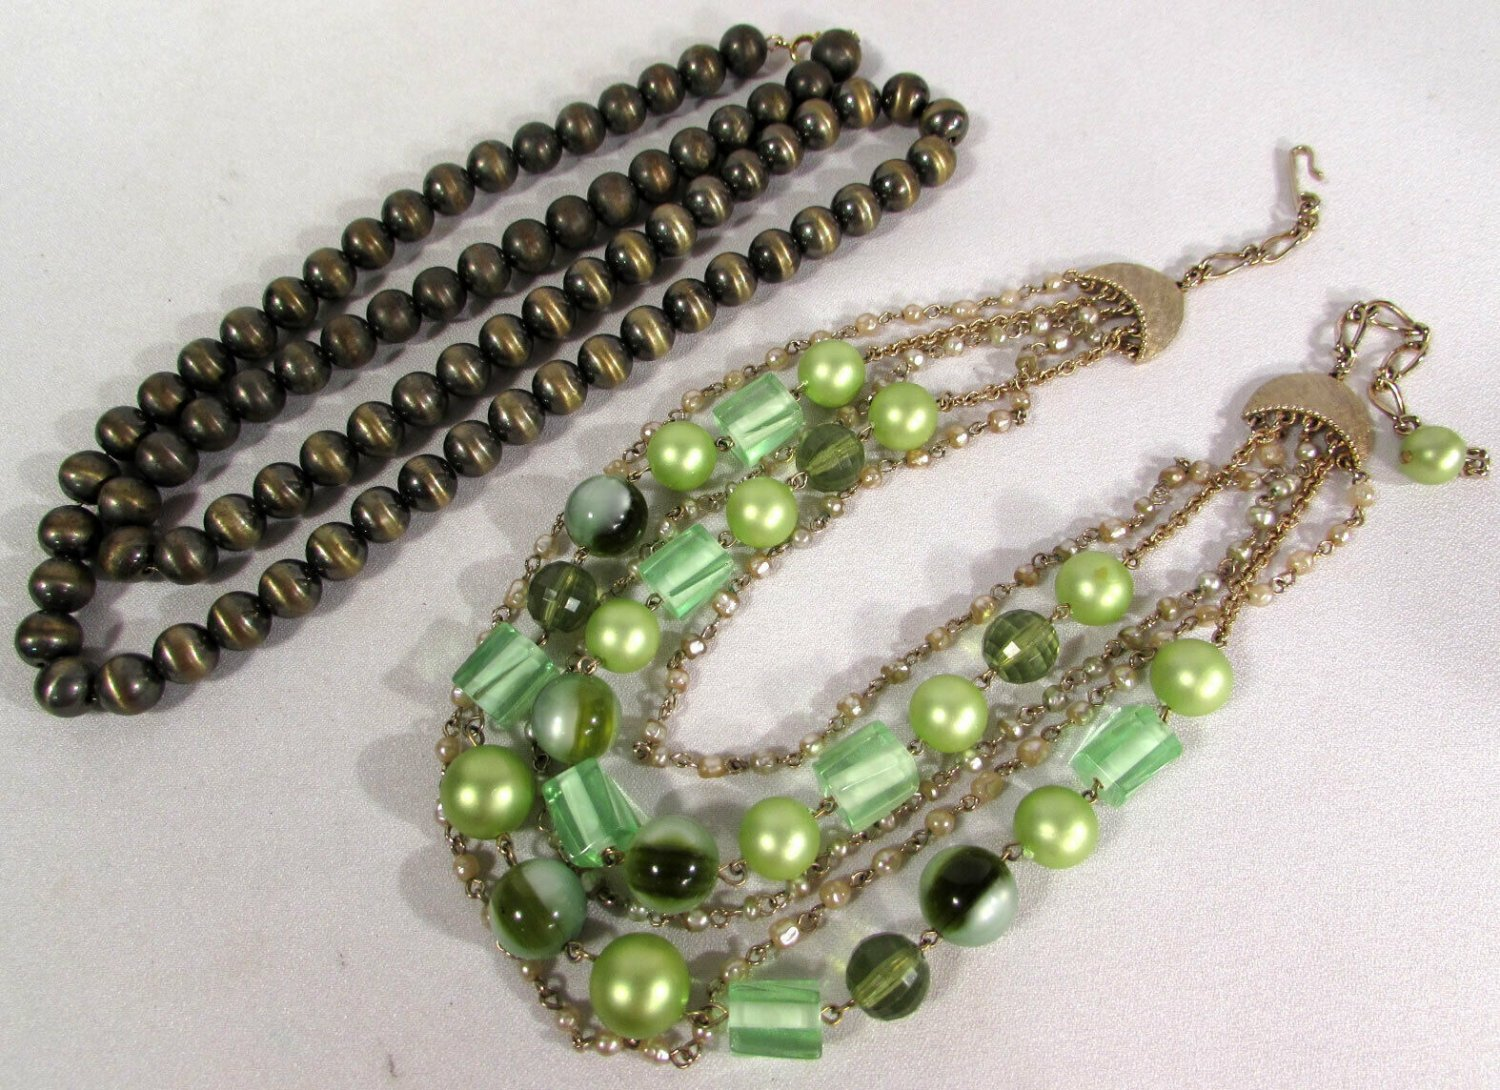 Vintage Costume Jewelry Necklaces (2) Beads & Chains